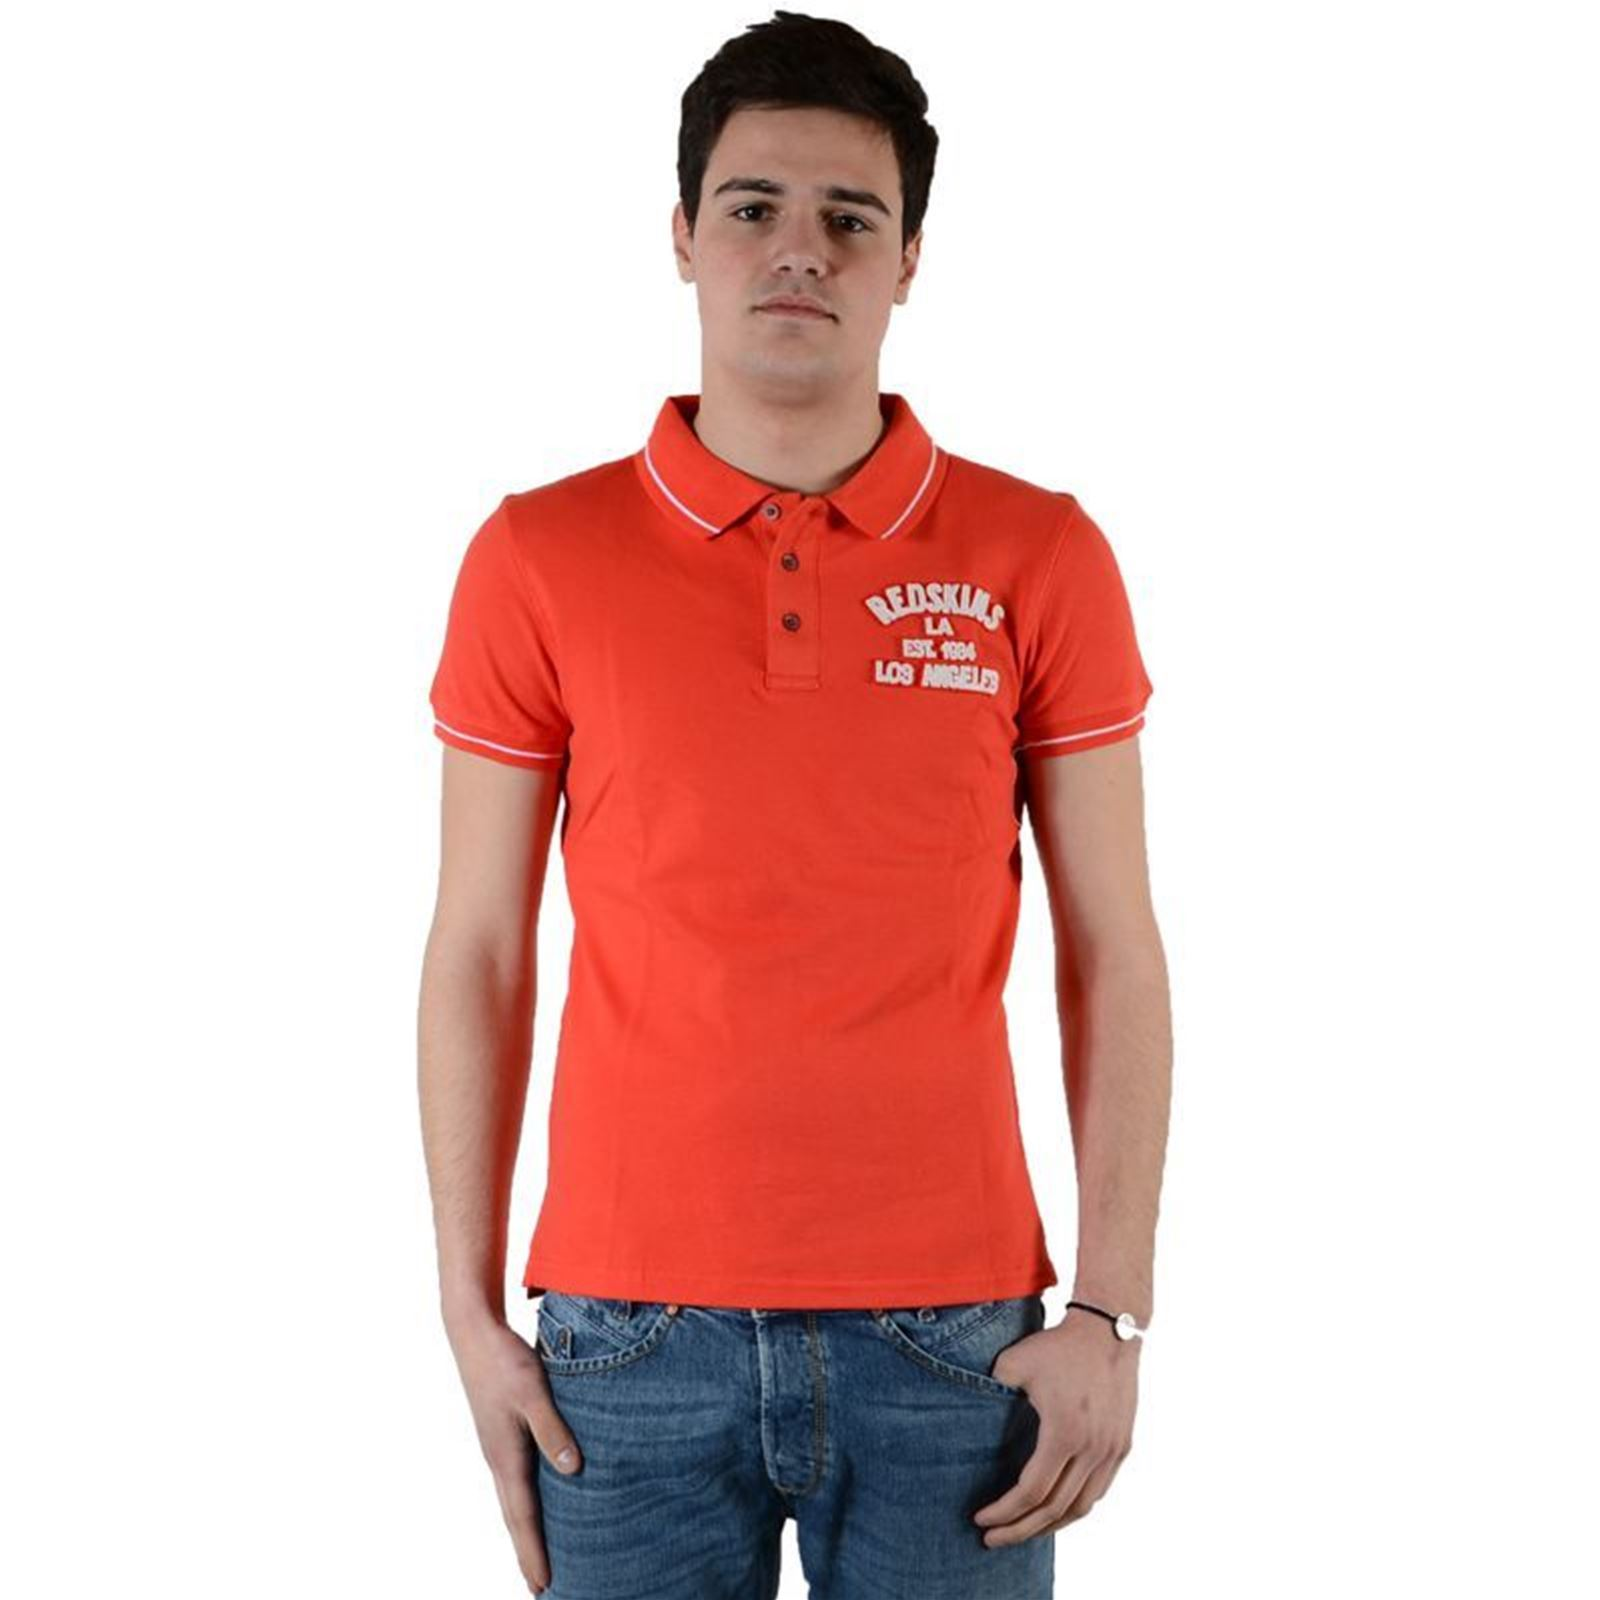 Esteban Homme Manches Orange Redskins Courtes V BridgePolo D2YIHeW9E